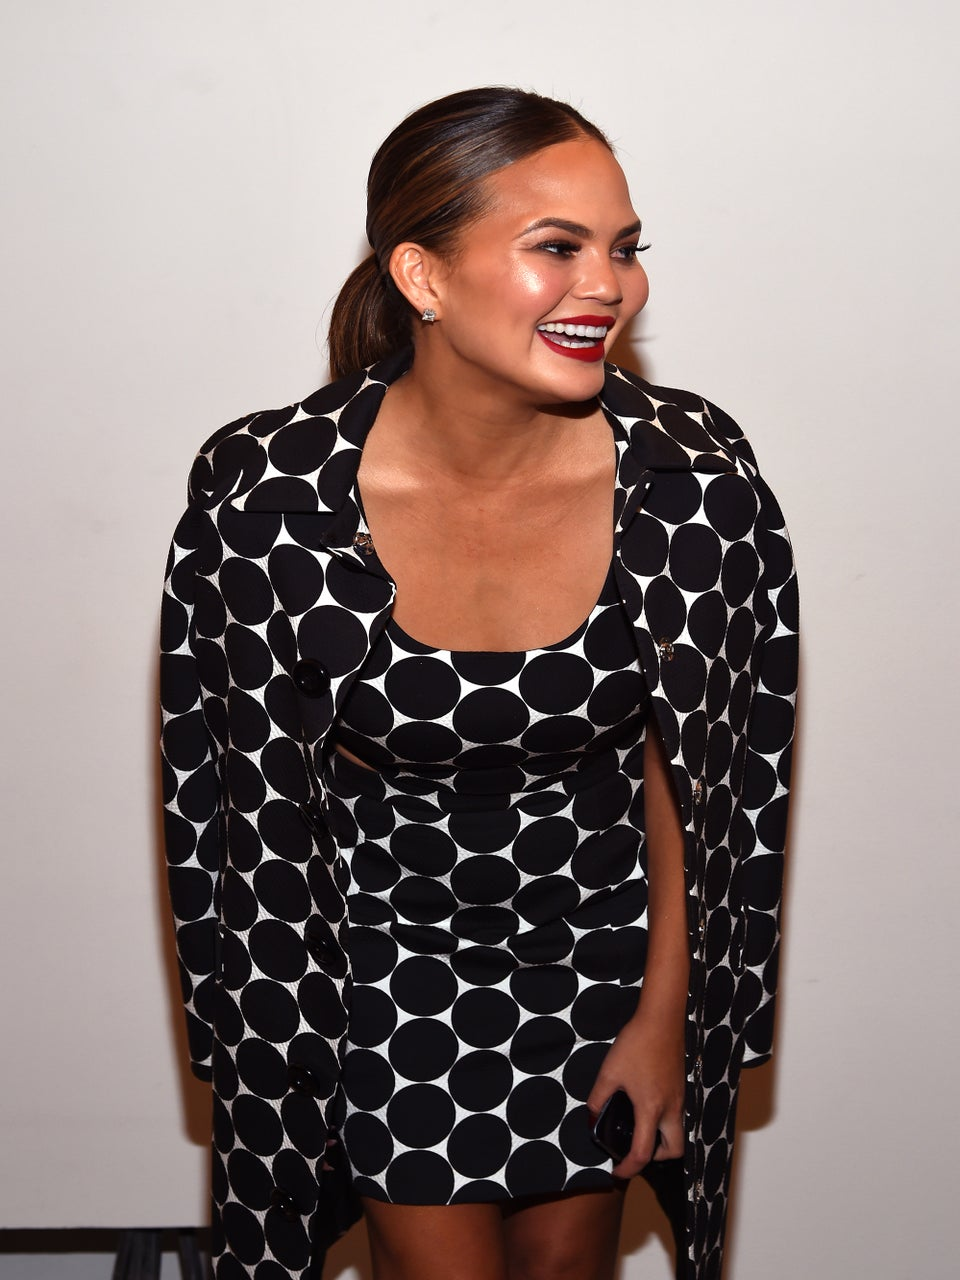 If You Forget To Change Your Address, Chrissy Teigen Will Open Your Mail